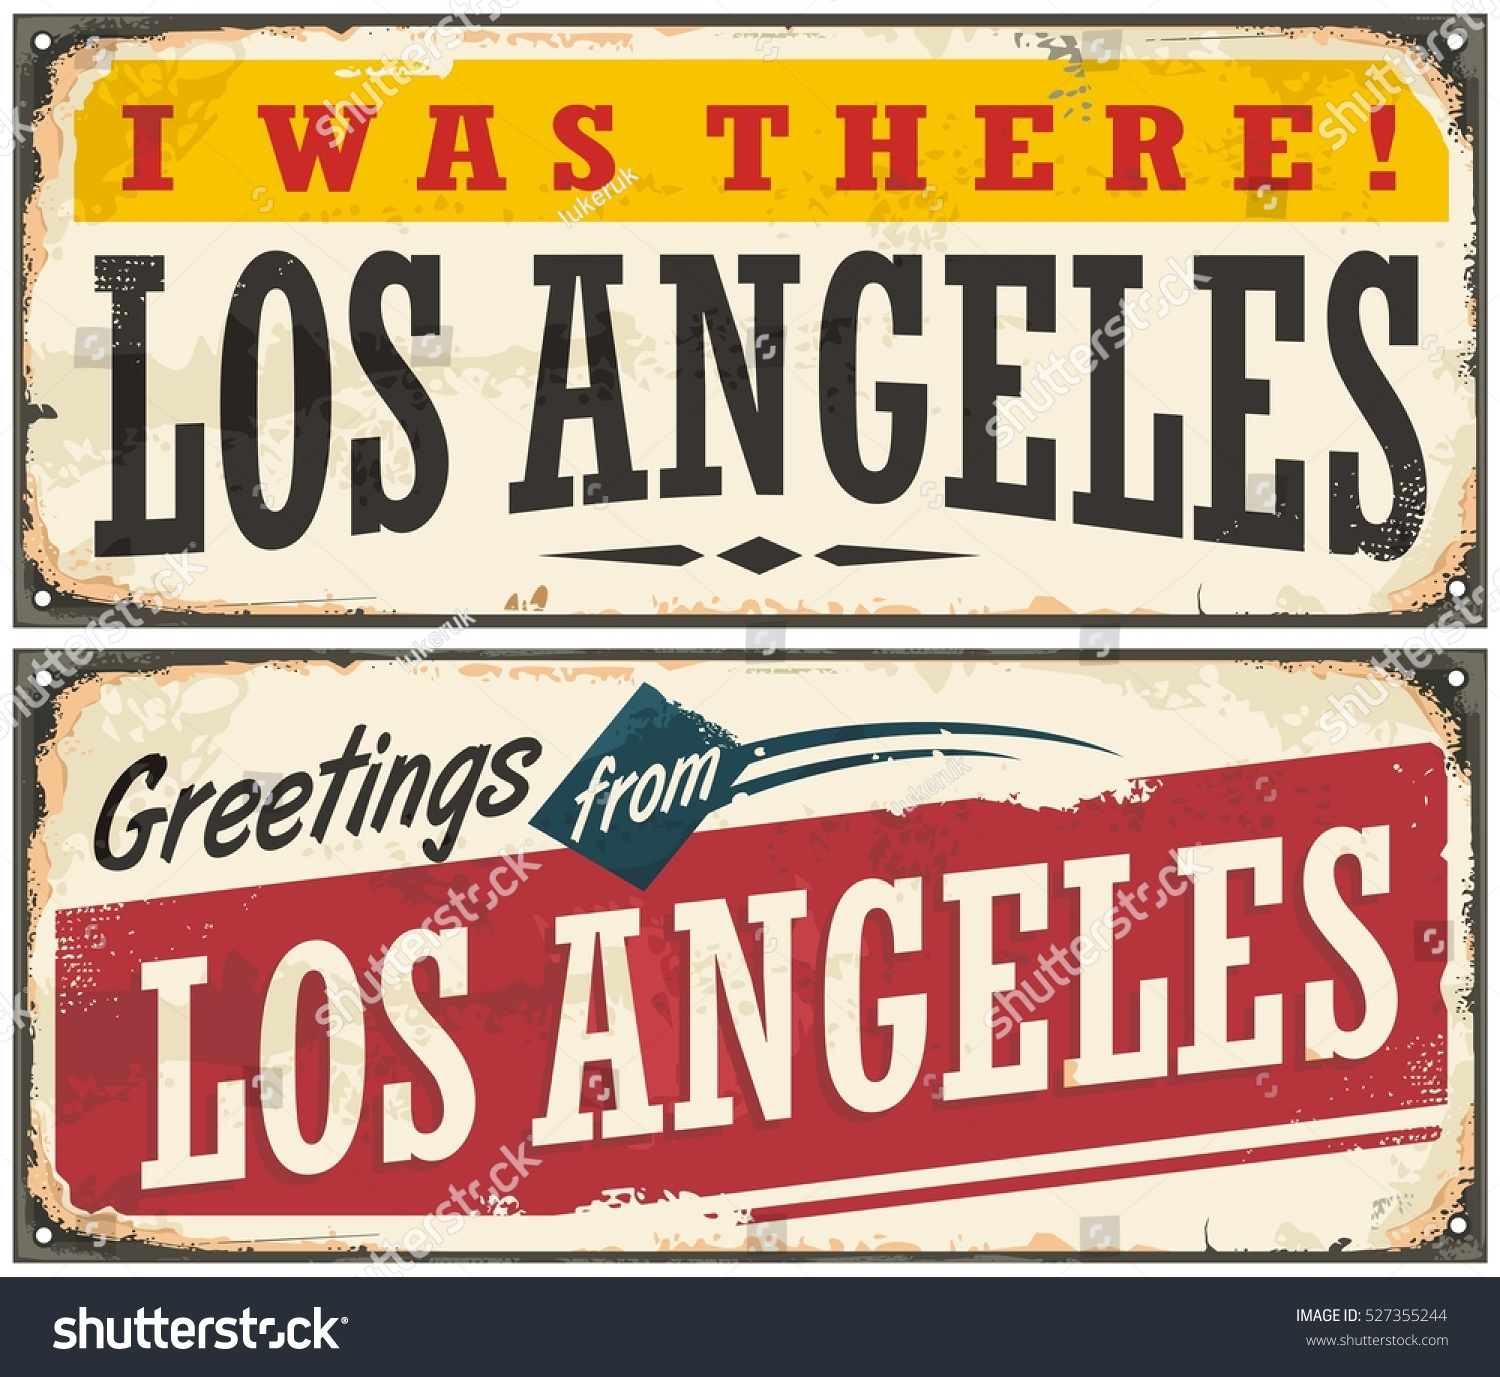 los angeles retro travel sign or postcard template greetings from